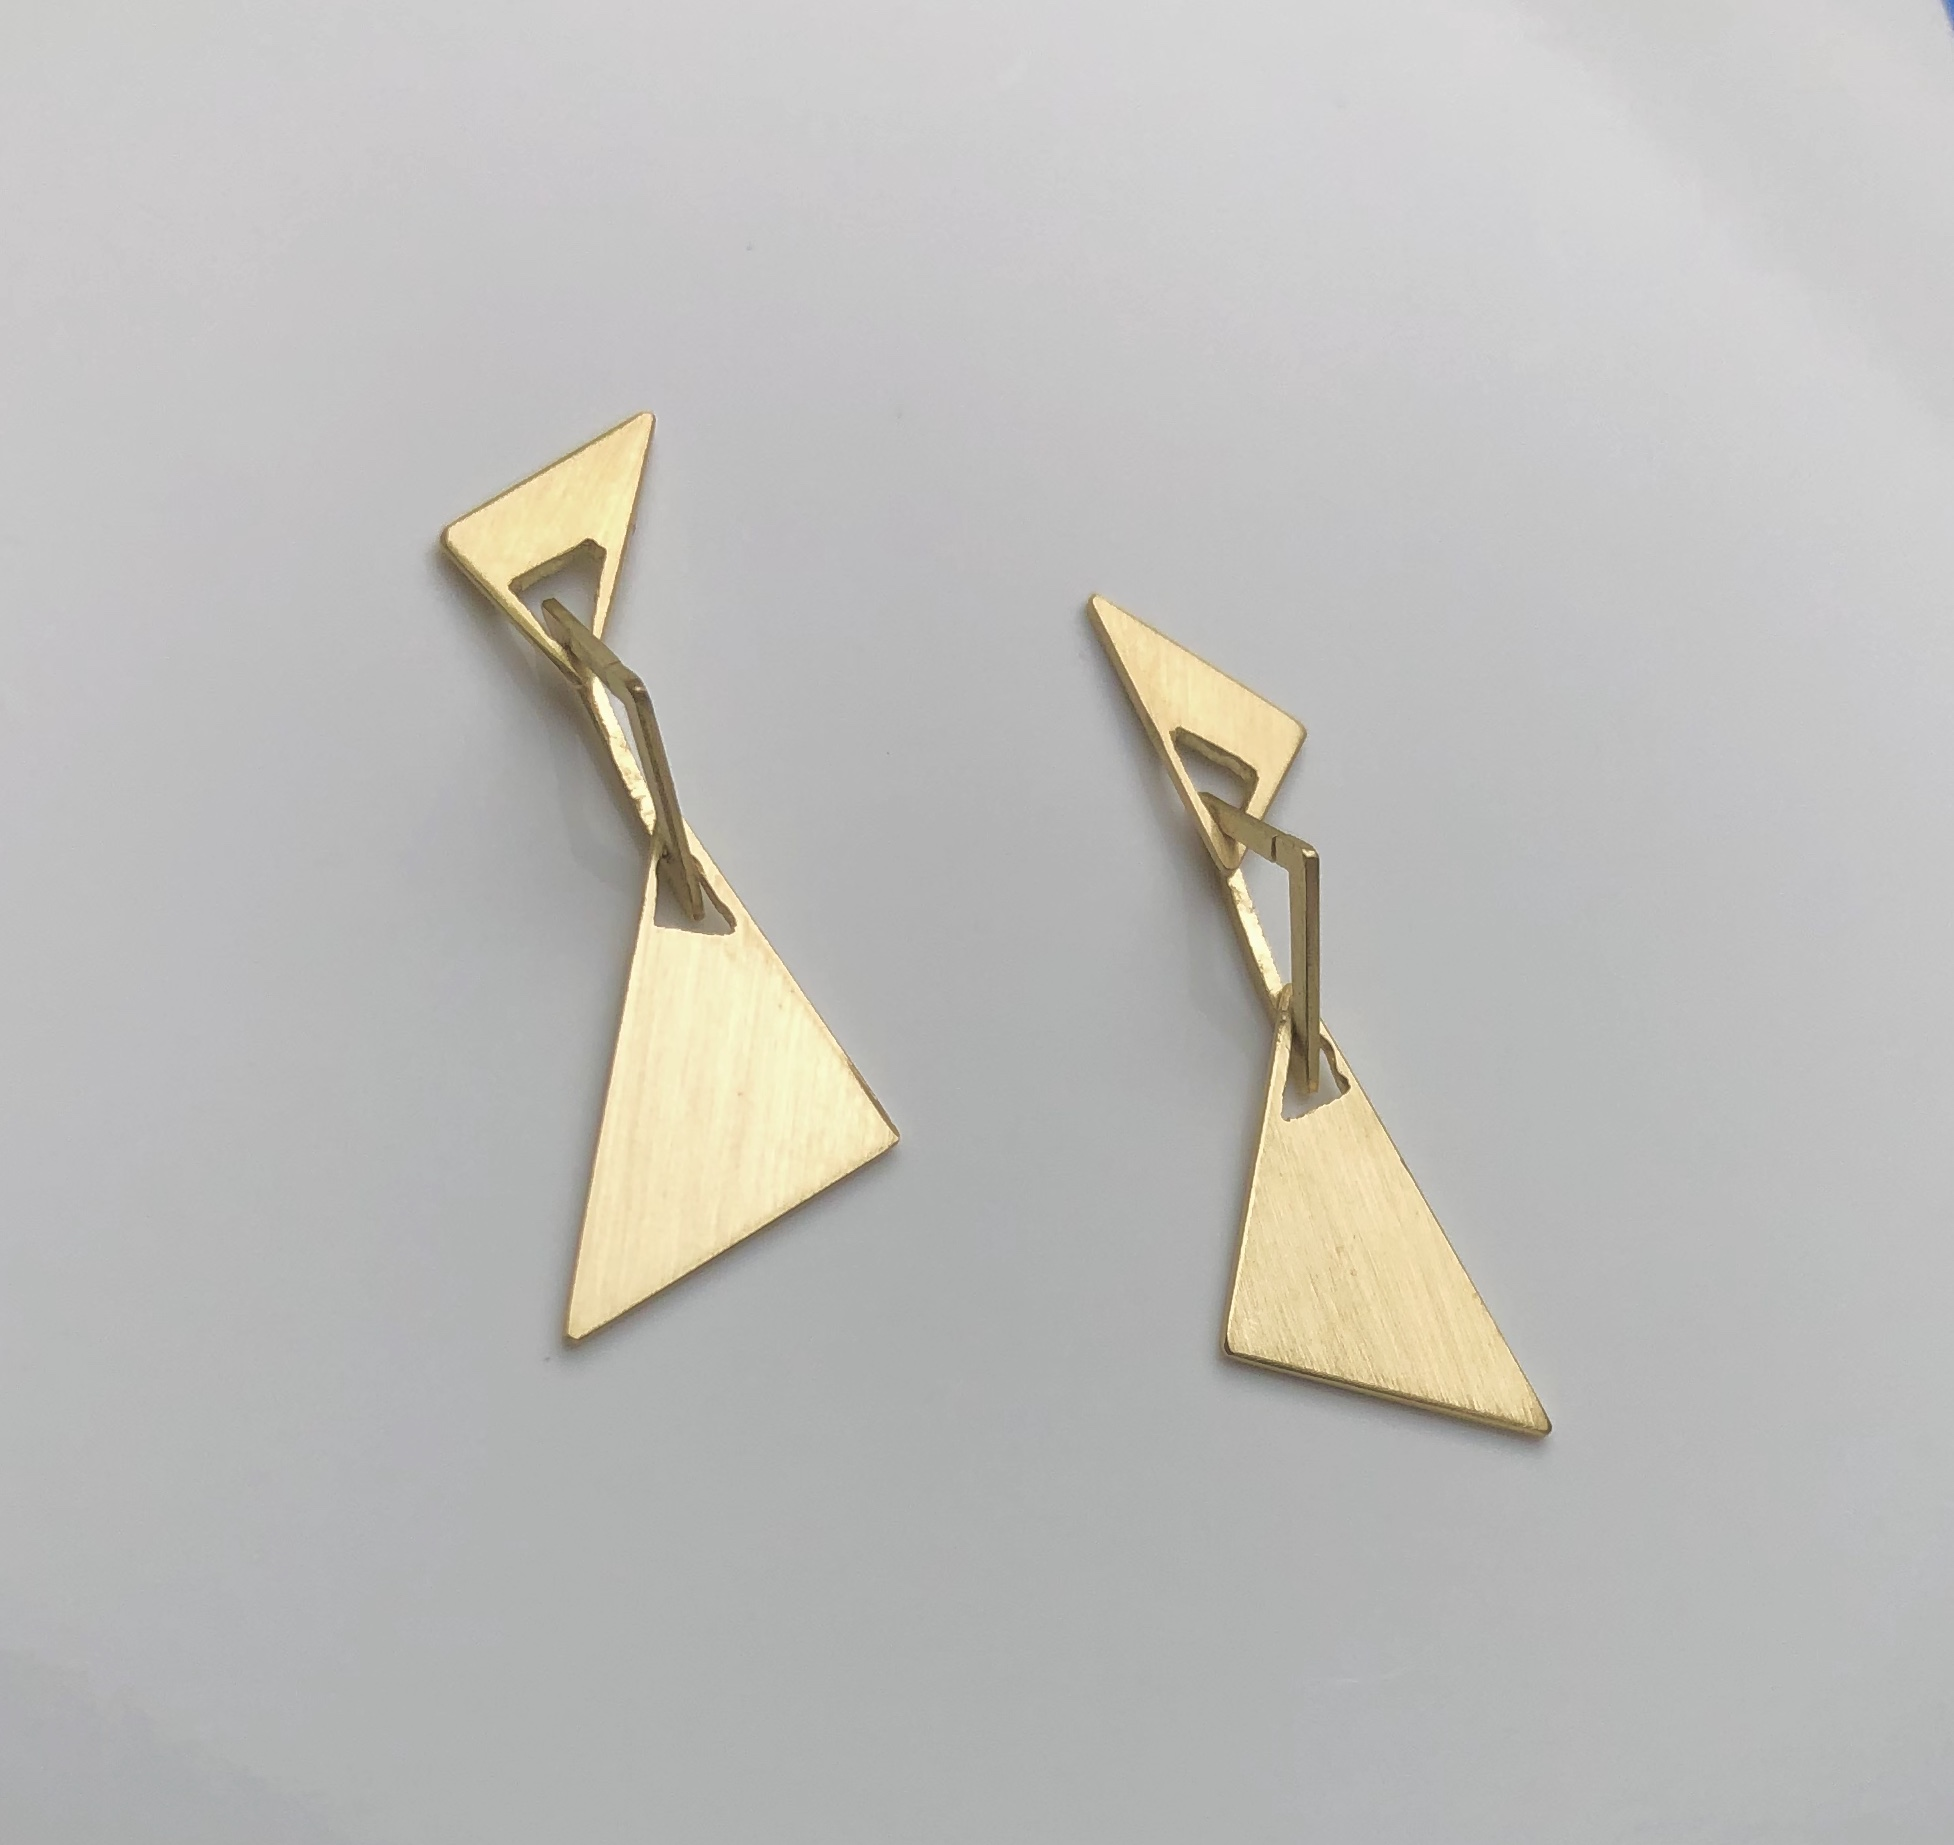 golden earrings : 600 €